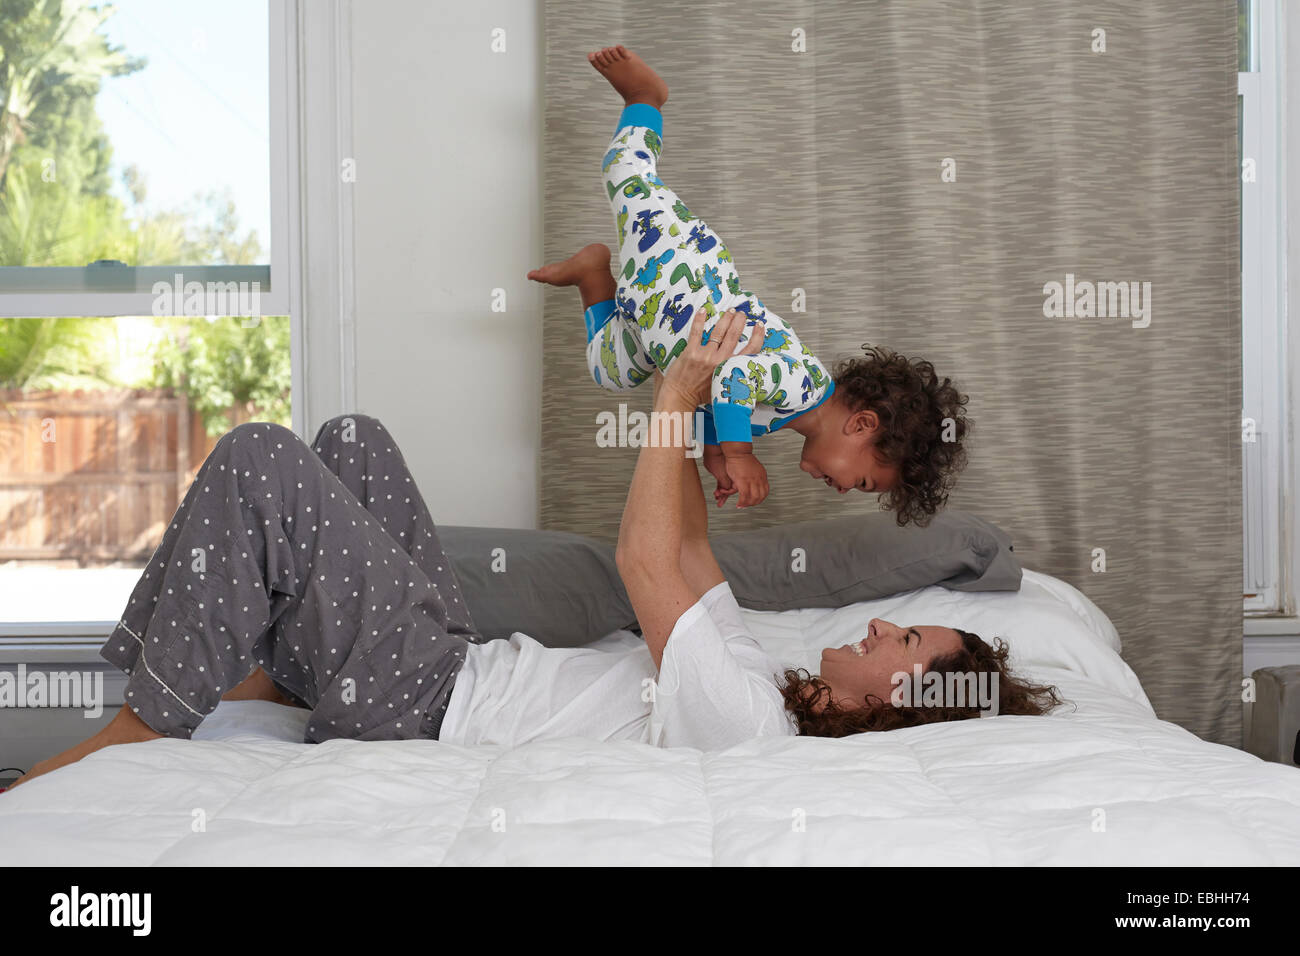 Young woman lying on bed lifting up toddler son - Stock Image